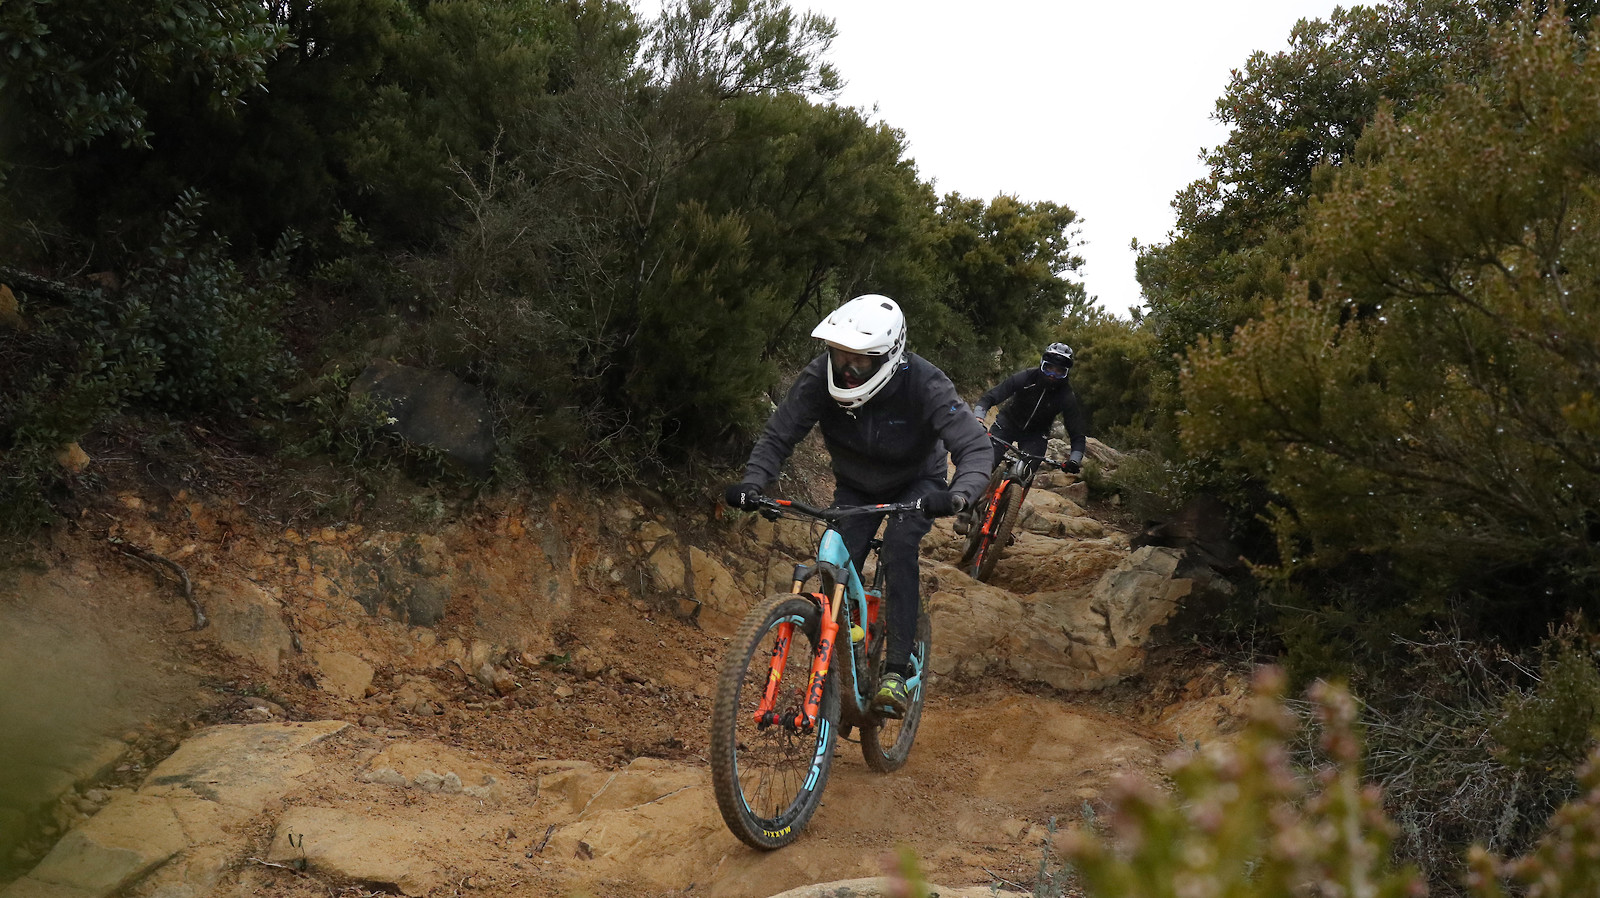 Thomas and Vid San Remo 01 - porson - Mountain Biking Pictures - Vital MTB